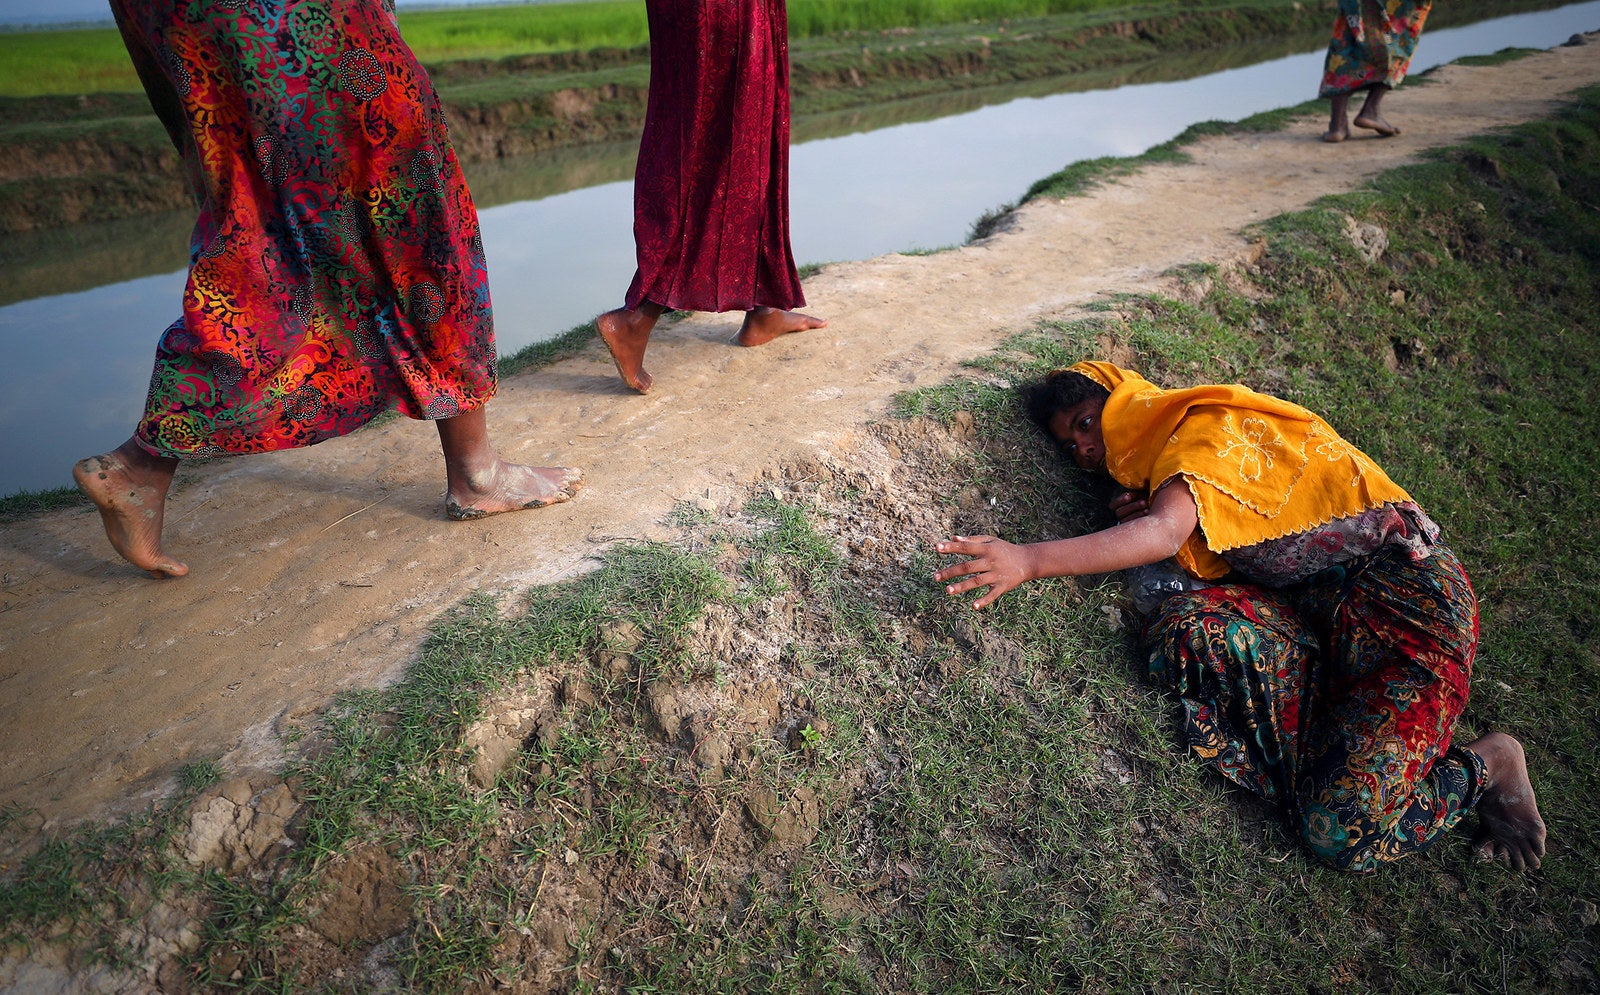 An exhausted Rohingya refugee cries for help to other refugees as they make their way from Myanmar into Palang Khali, near Cox's Bazar, Bangladesh, on Nov. 2.